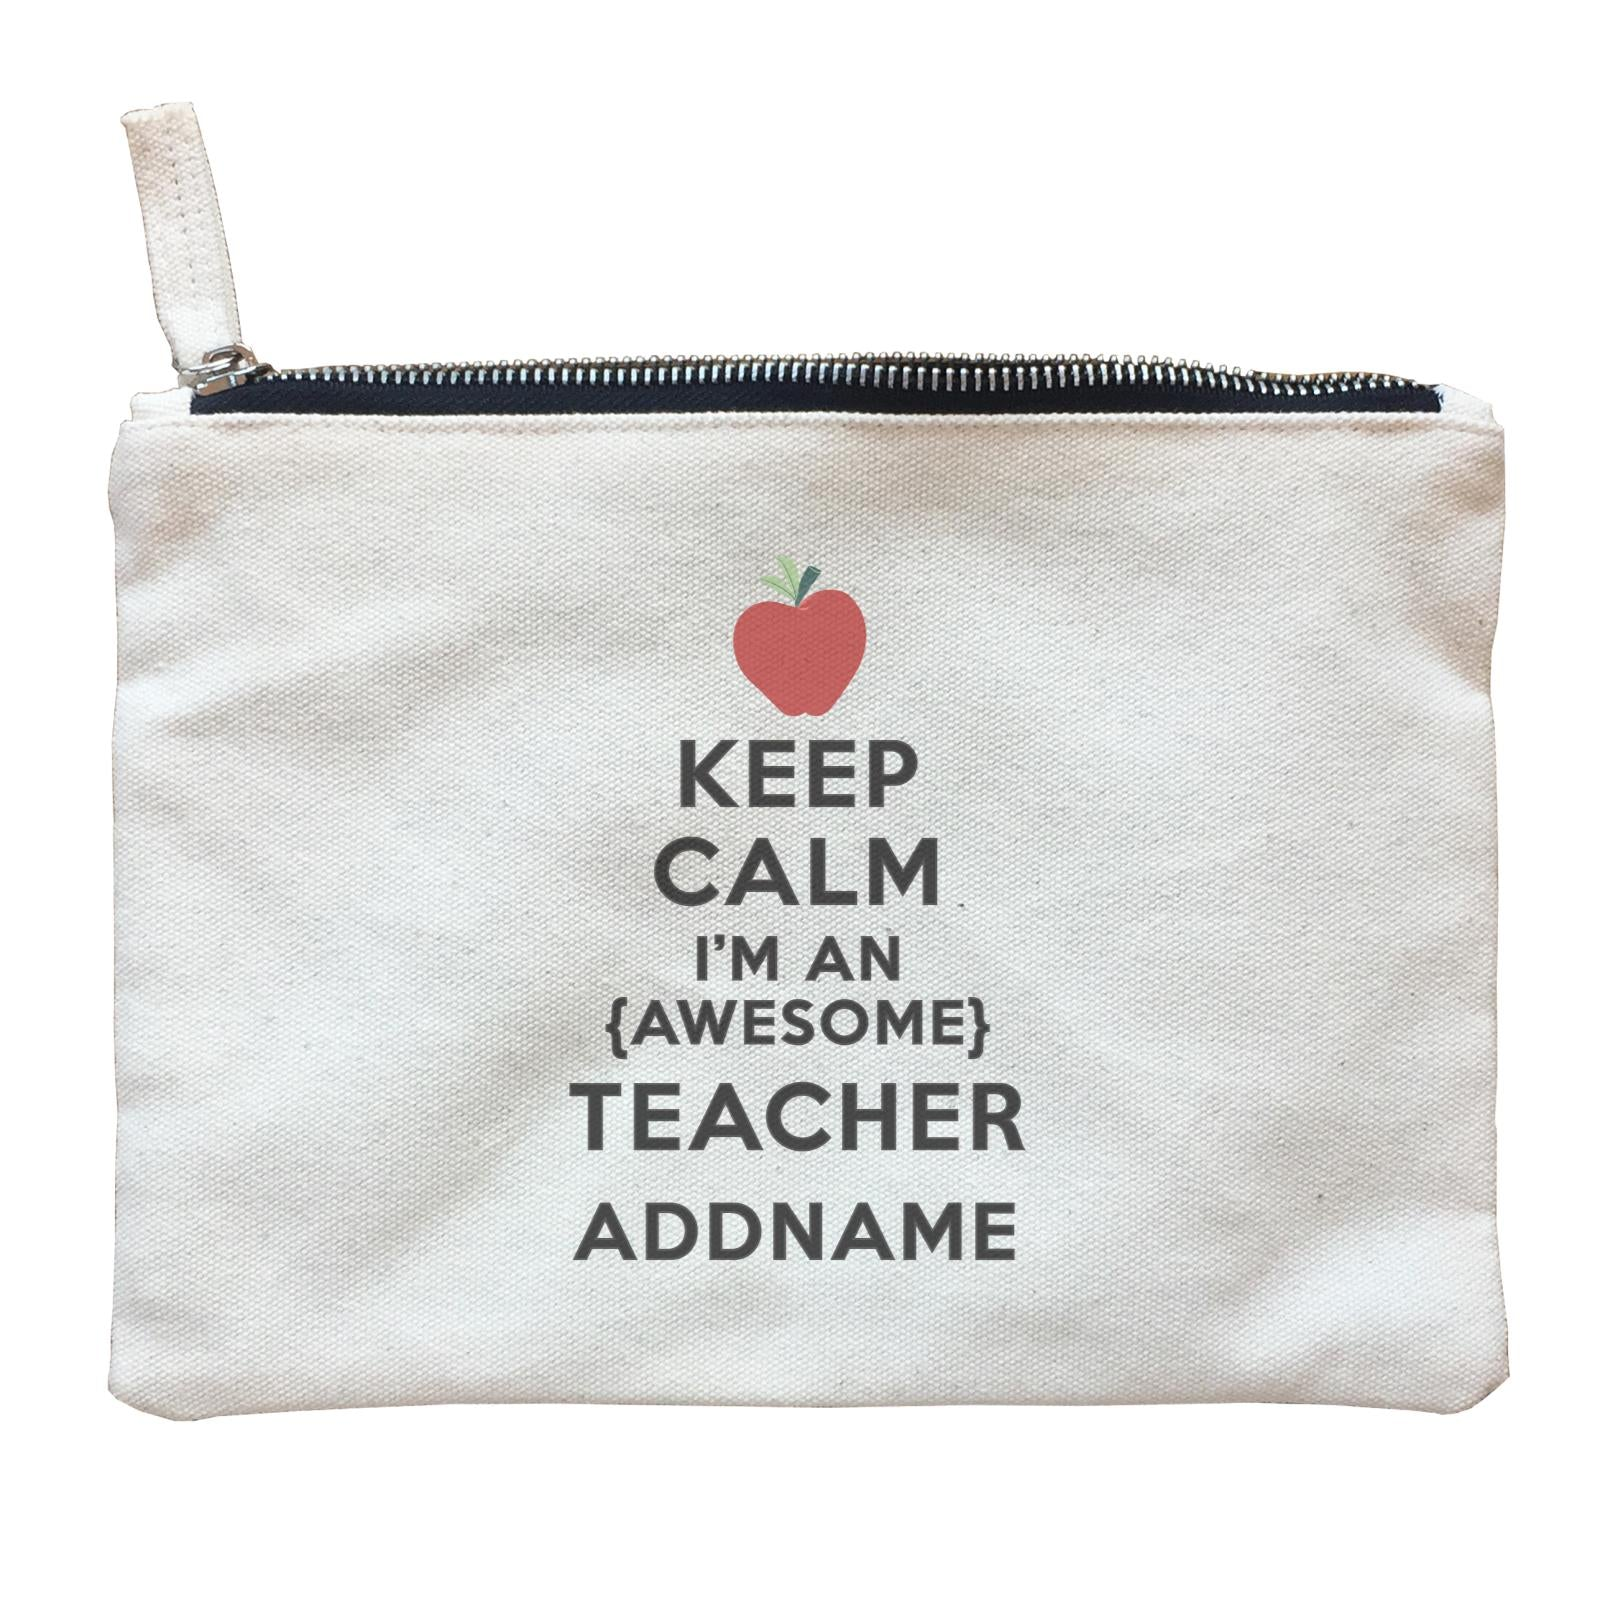 Teacher Quotes Keep Calm I'm An Awesome Teacher Addname Zipper Pouch